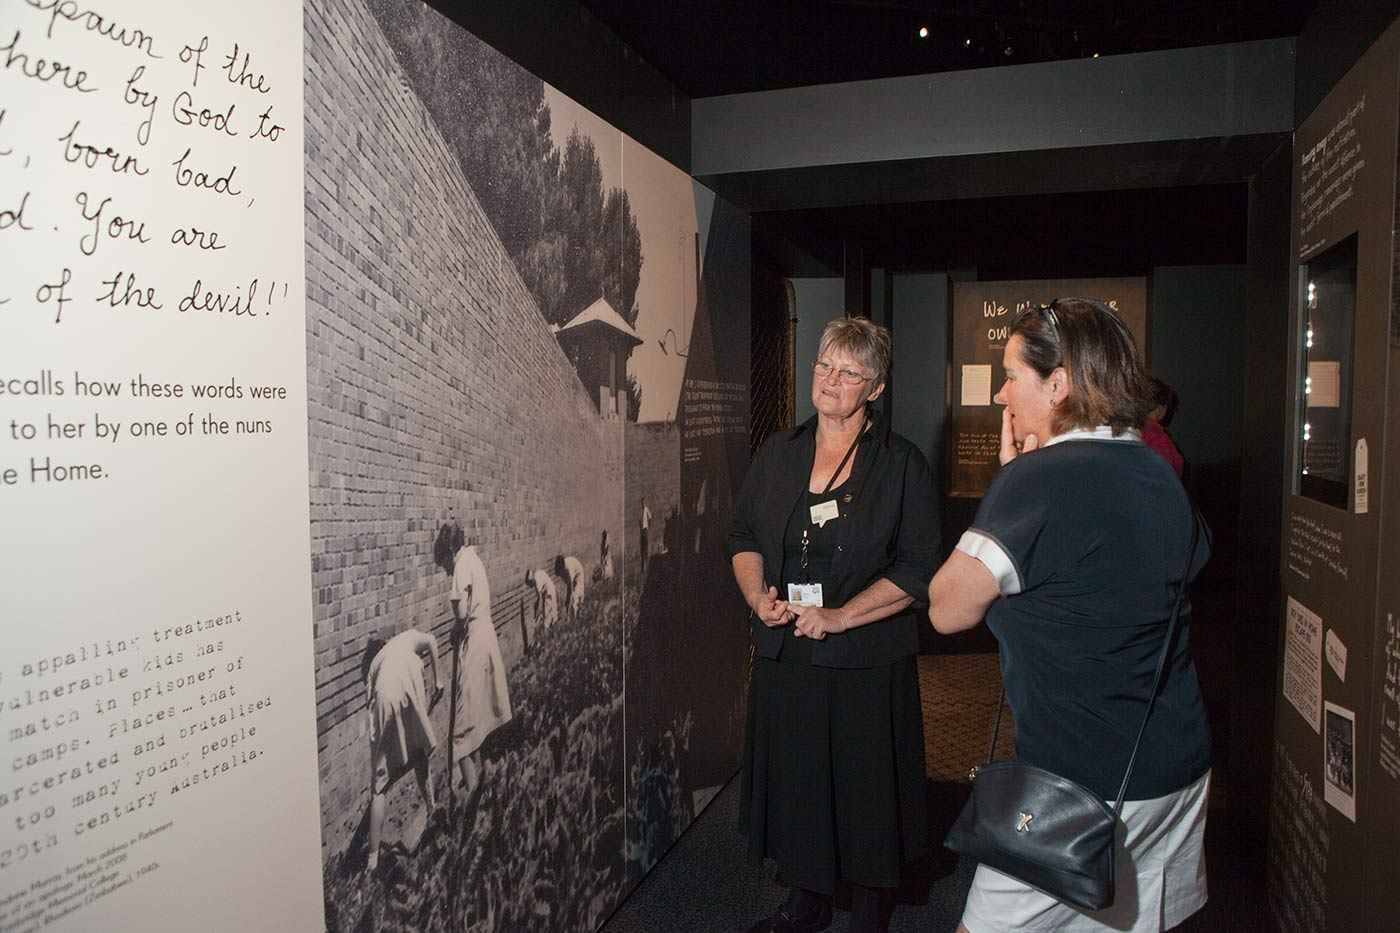 Colour photograph showing a woman standing in front of a large exhibition panel, talking to a visitor. The panel includes a black and white photograph of girls walking inside a brick wall. - click to view larger image